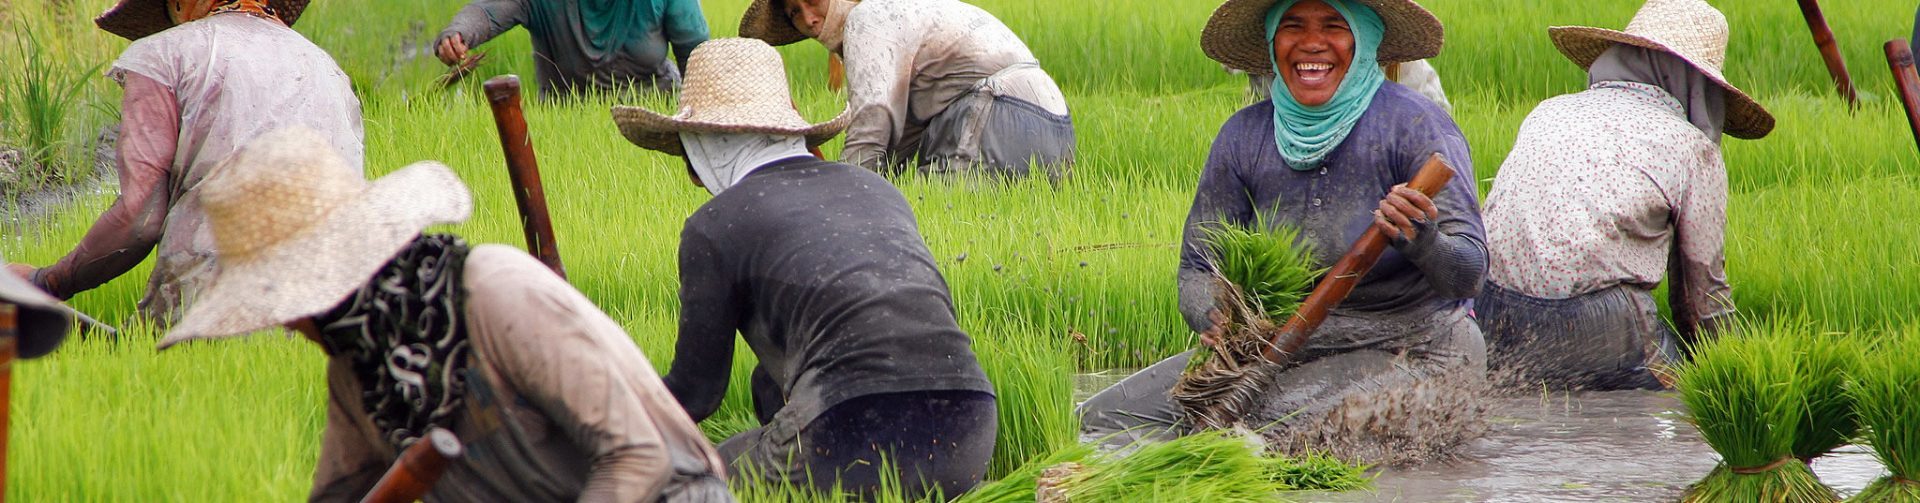 Philippine rice trade liberalization: Impacts on agriculture and the economy, and alternative policy actions